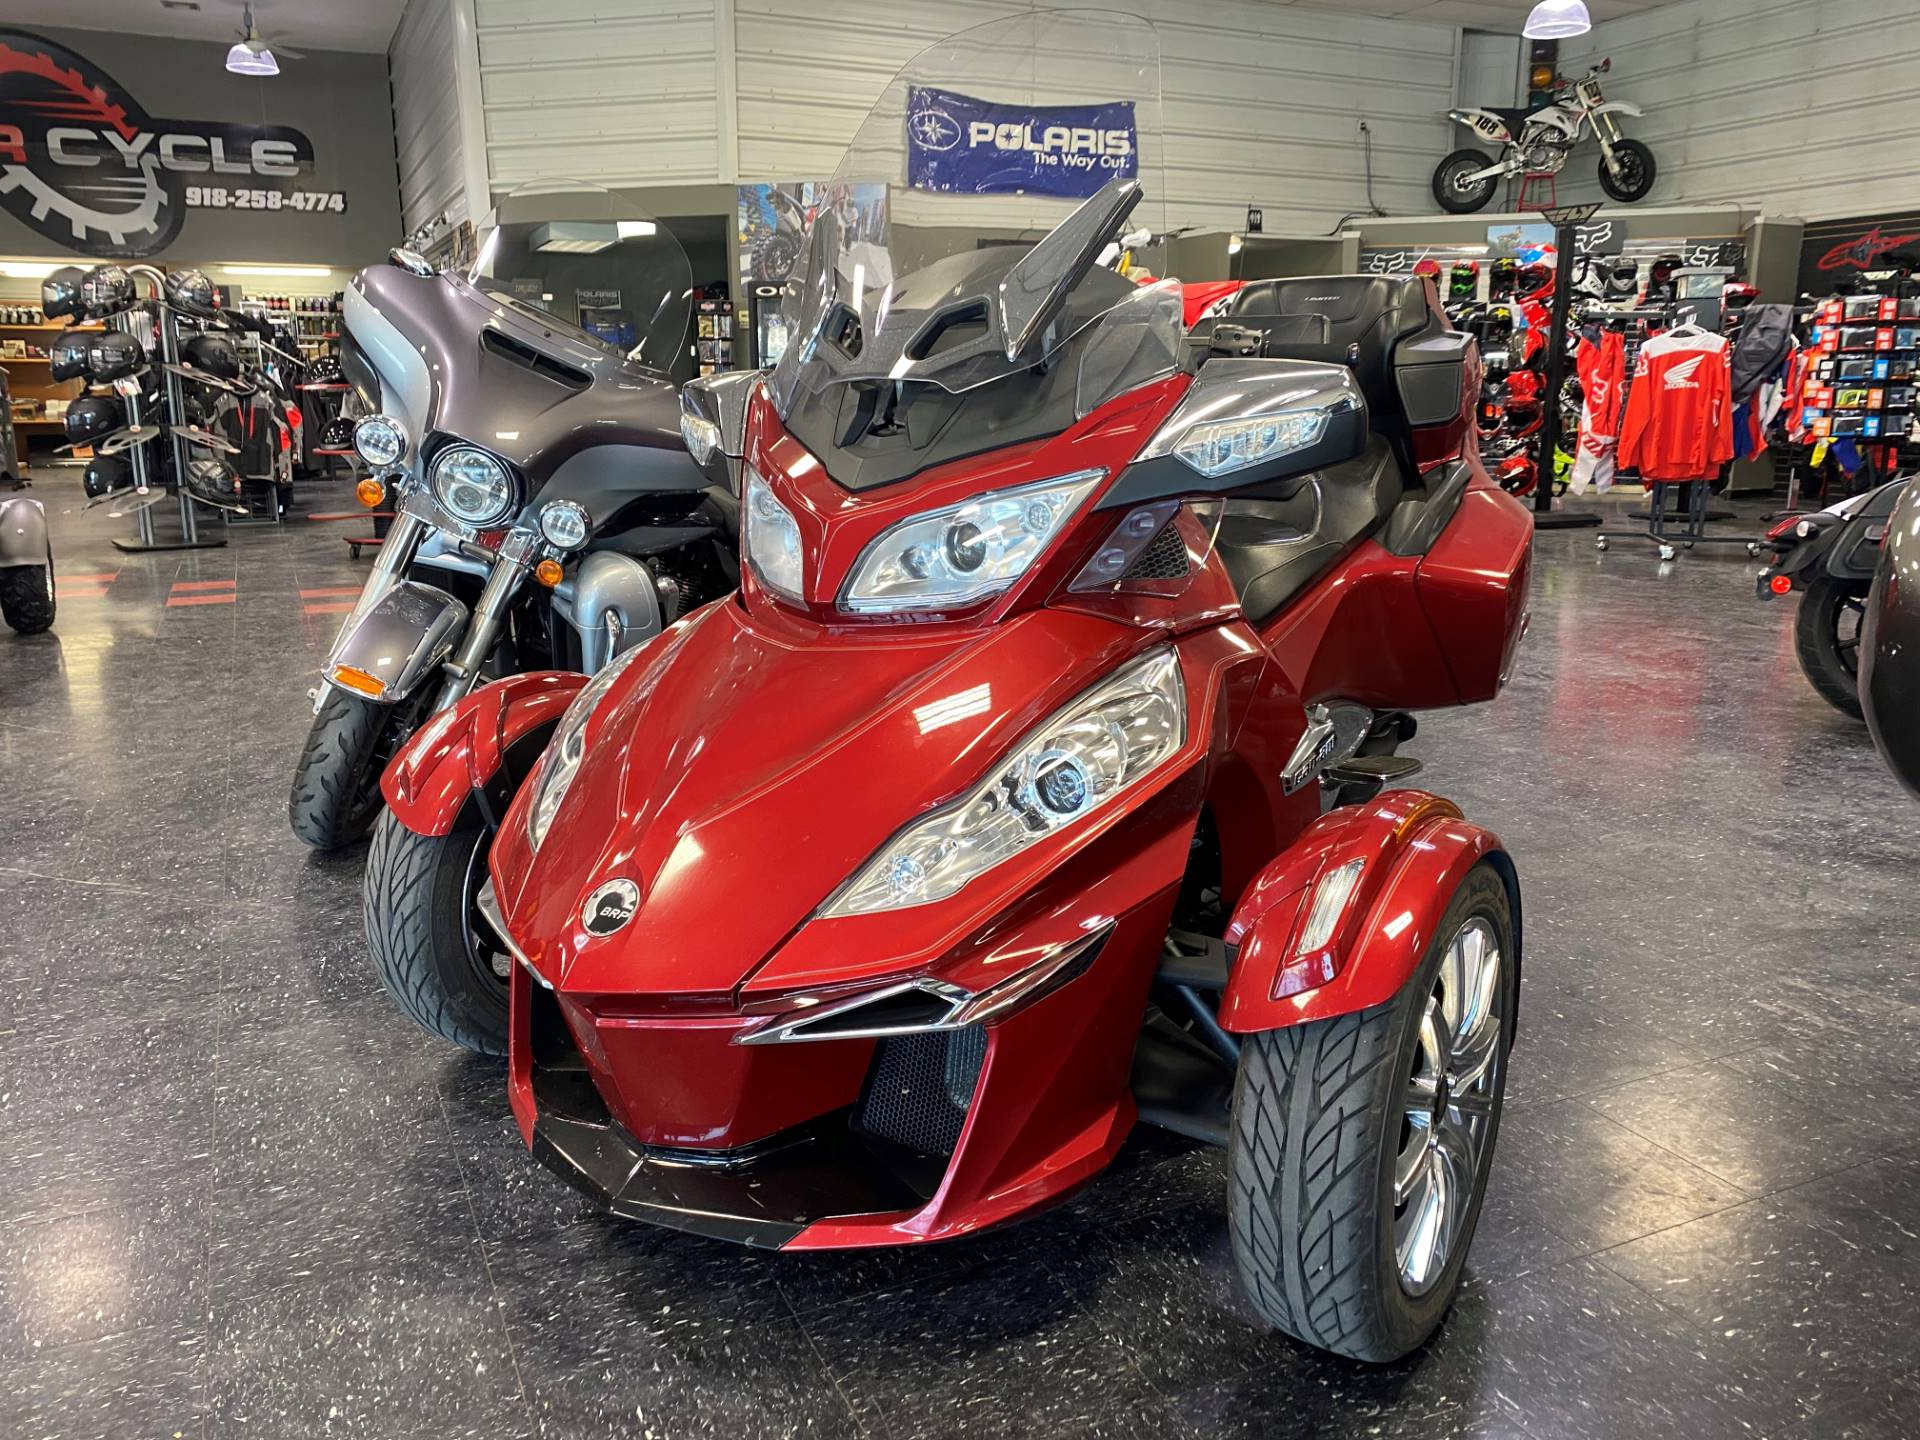 2016 Can-Am Spyder RT Limited in Broken Arrow, Oklahoma - Photo 4